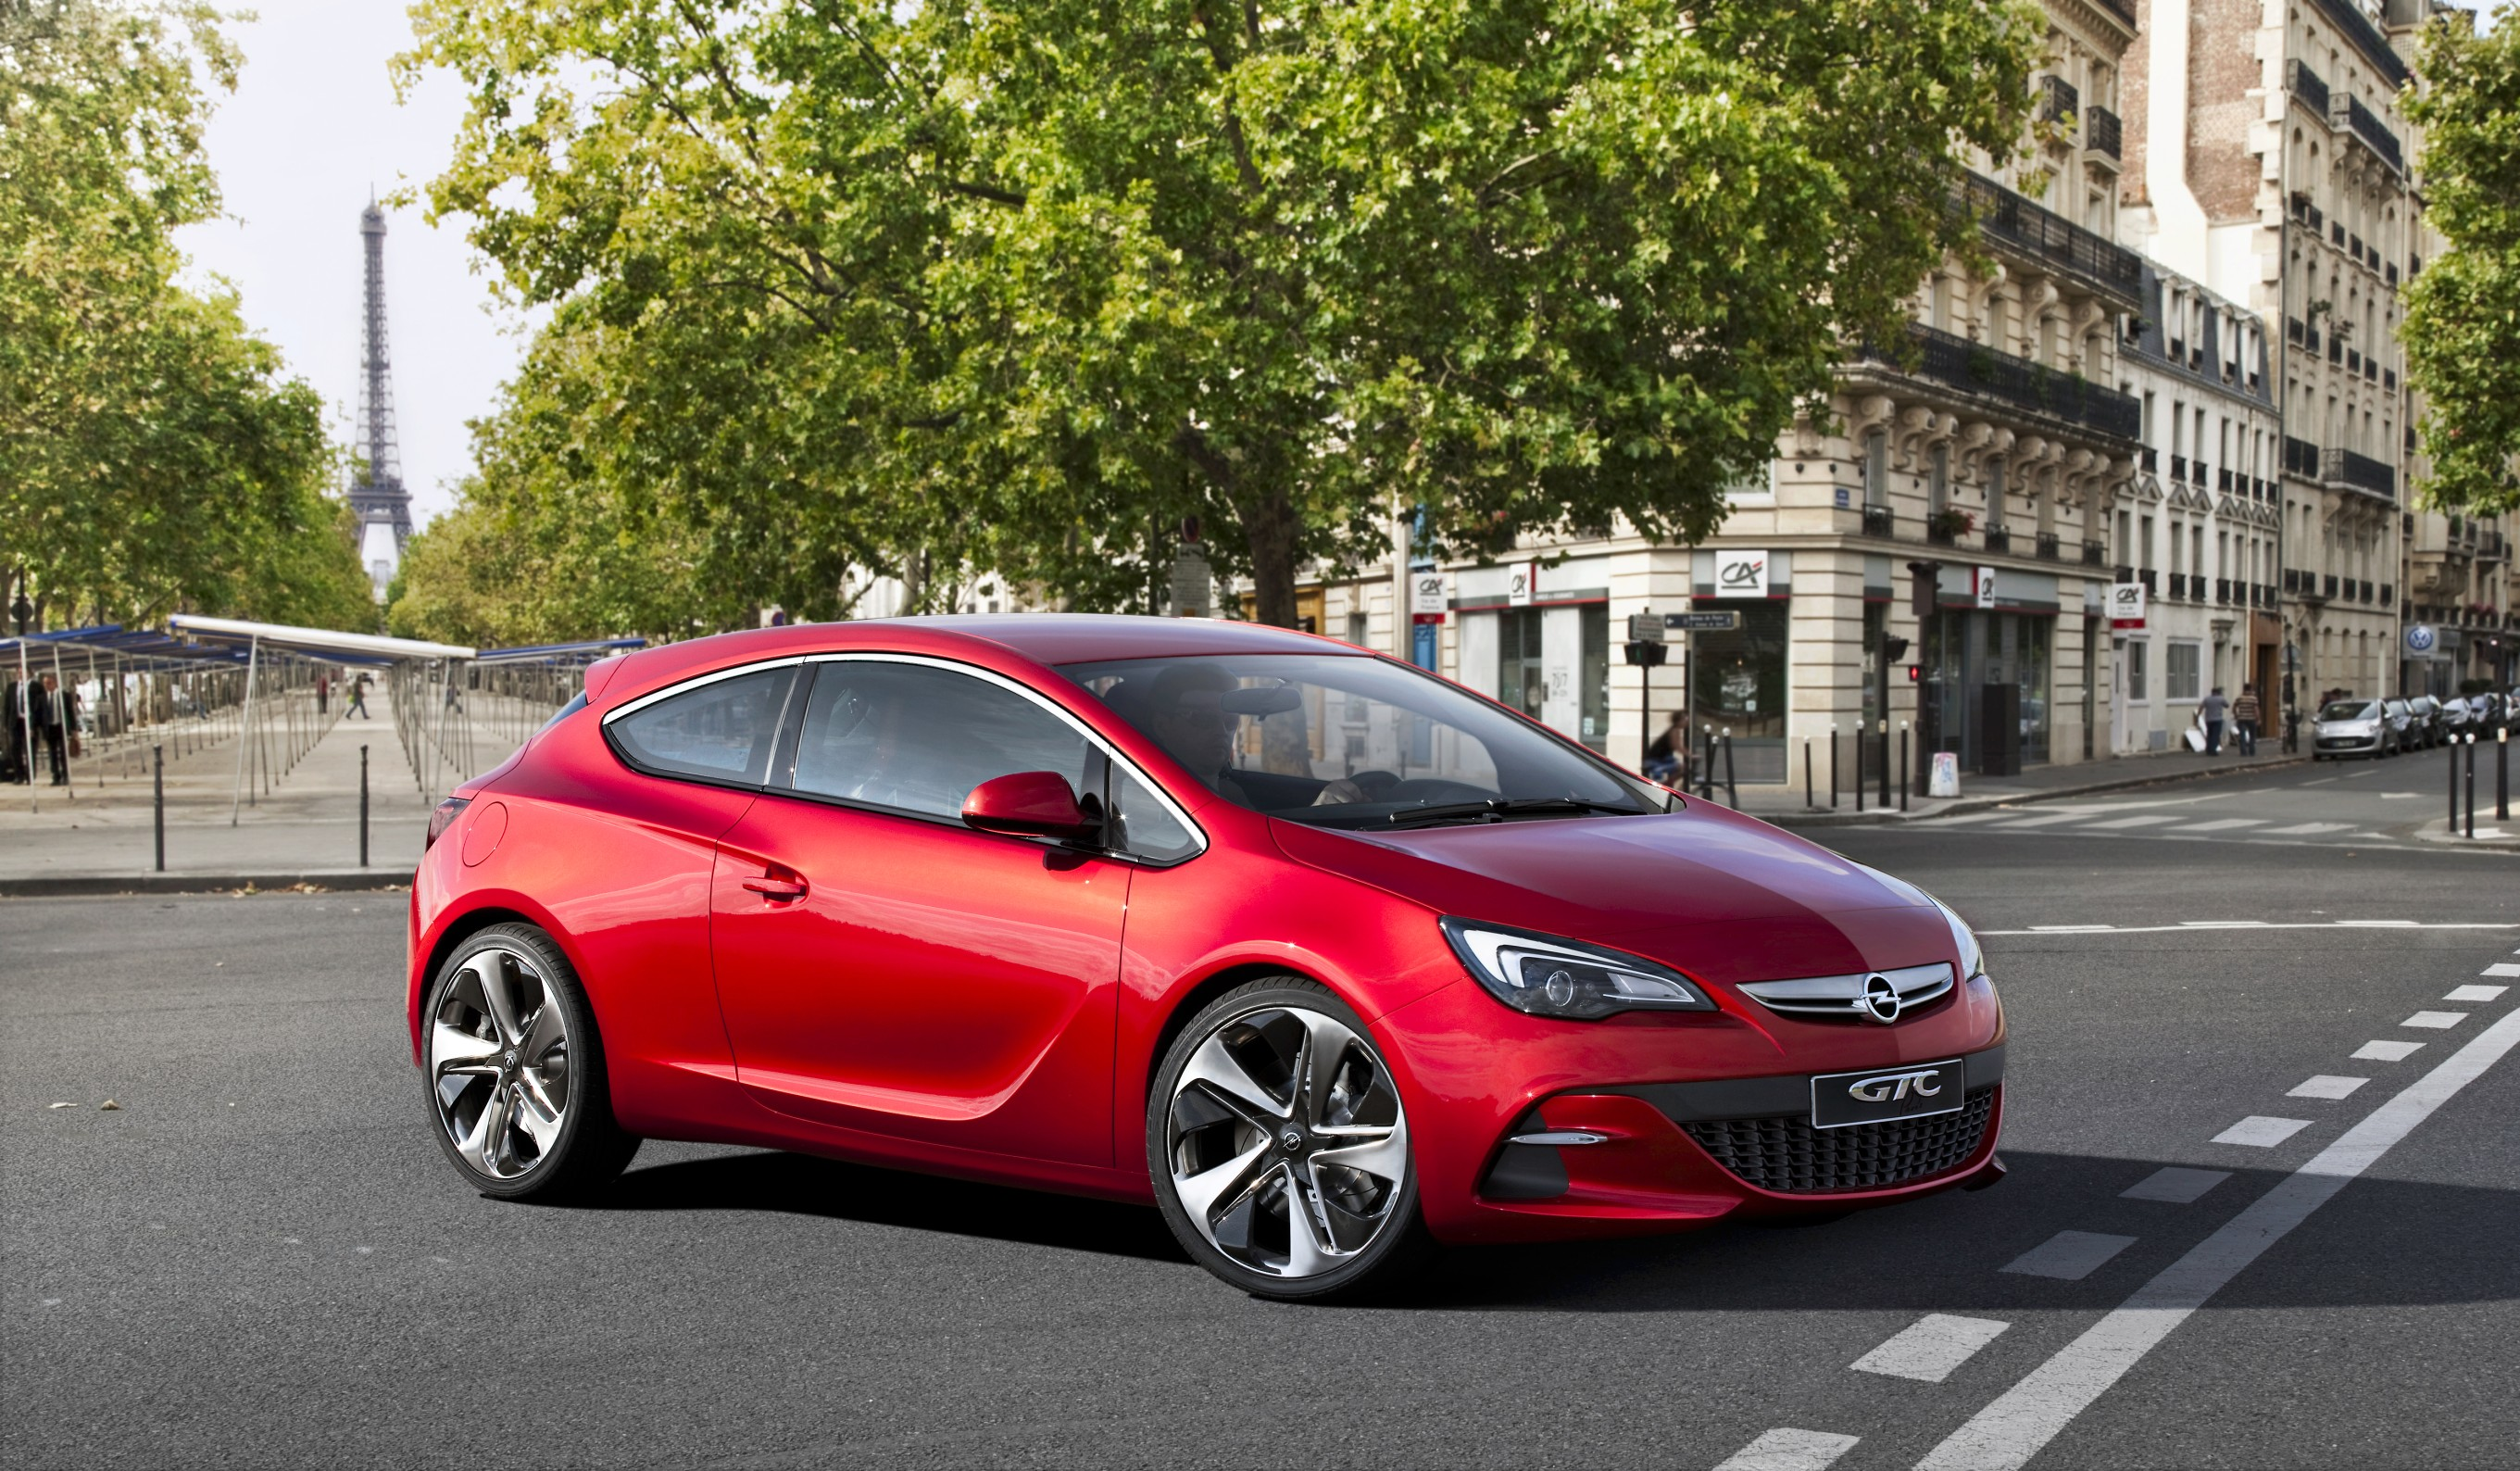 opel astra gtc paris turbo 290ch auto titre. Black Bedroom Furniture Sets. Home Design Ideas